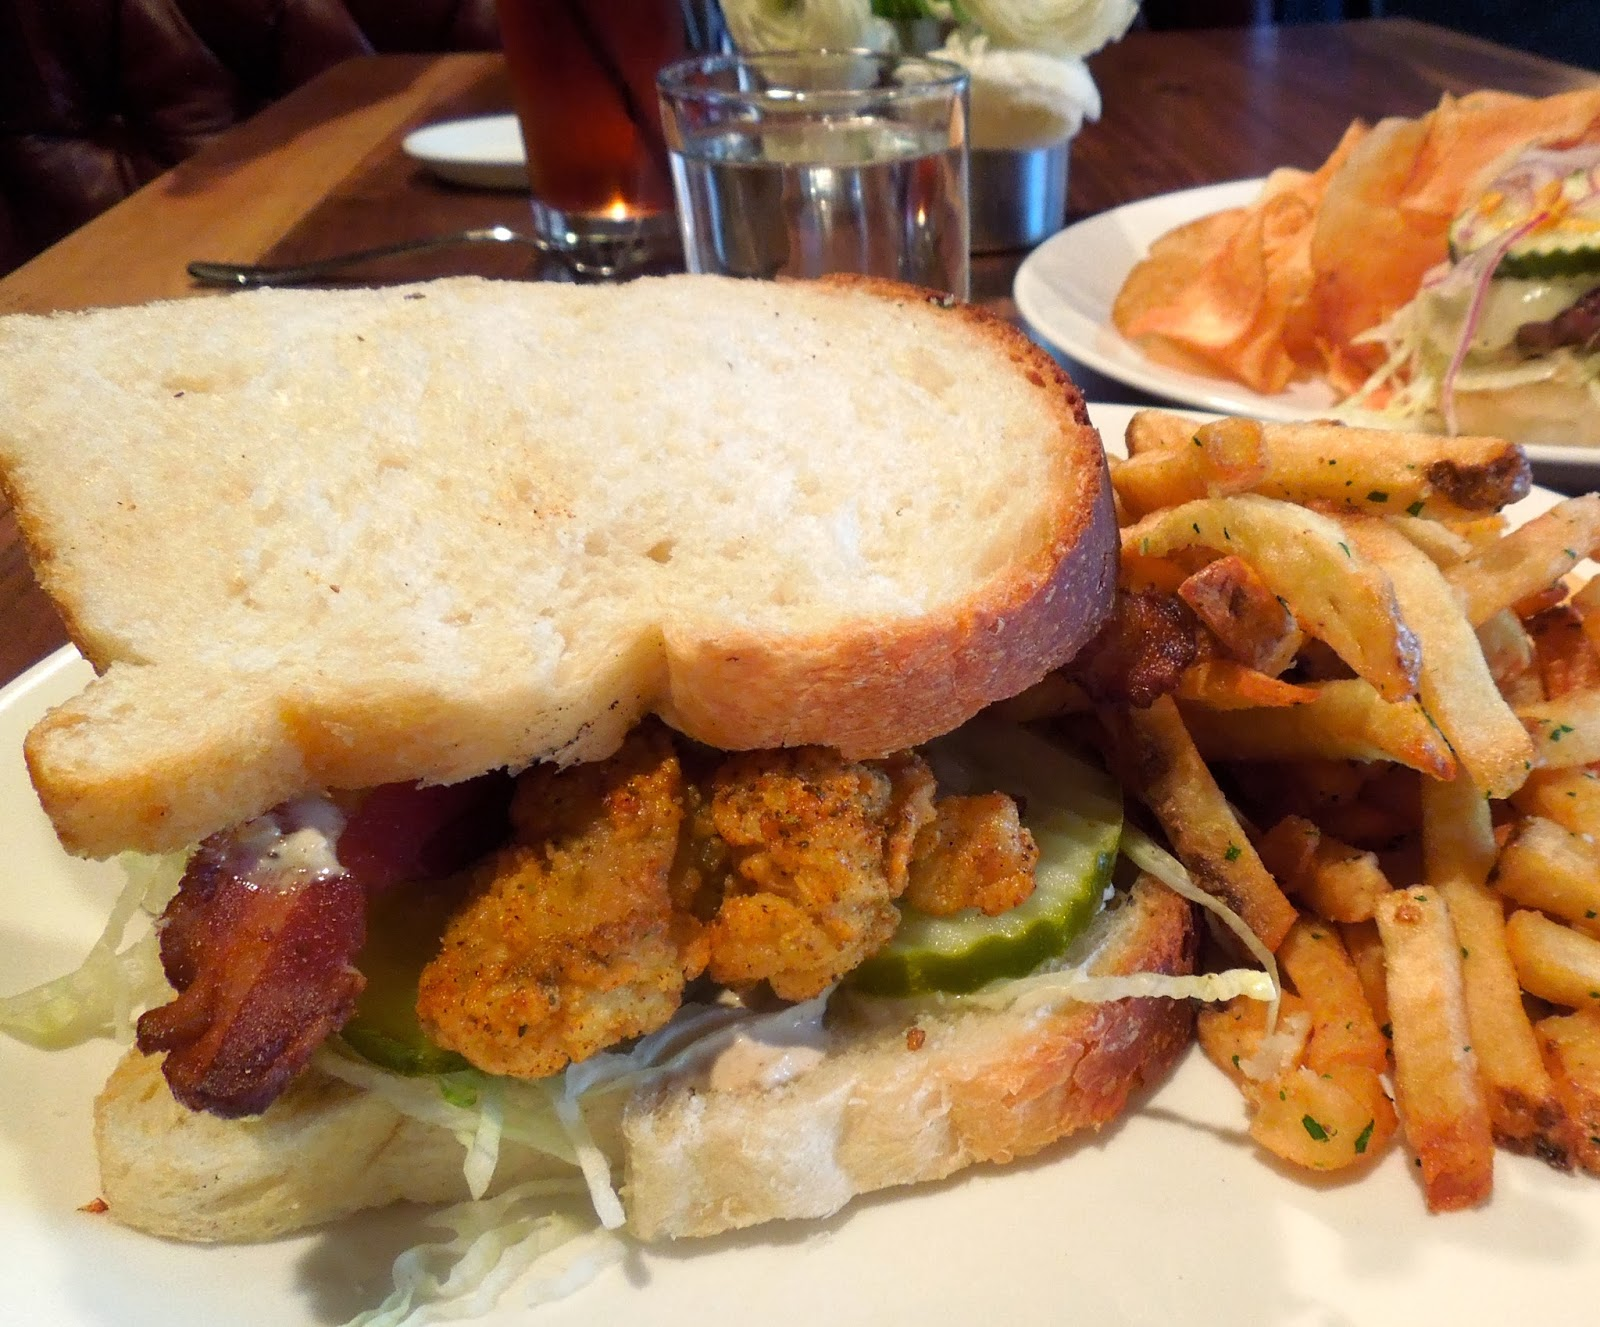 This lunch sandwich of fried oysters, bacon and other tasty items is a ...